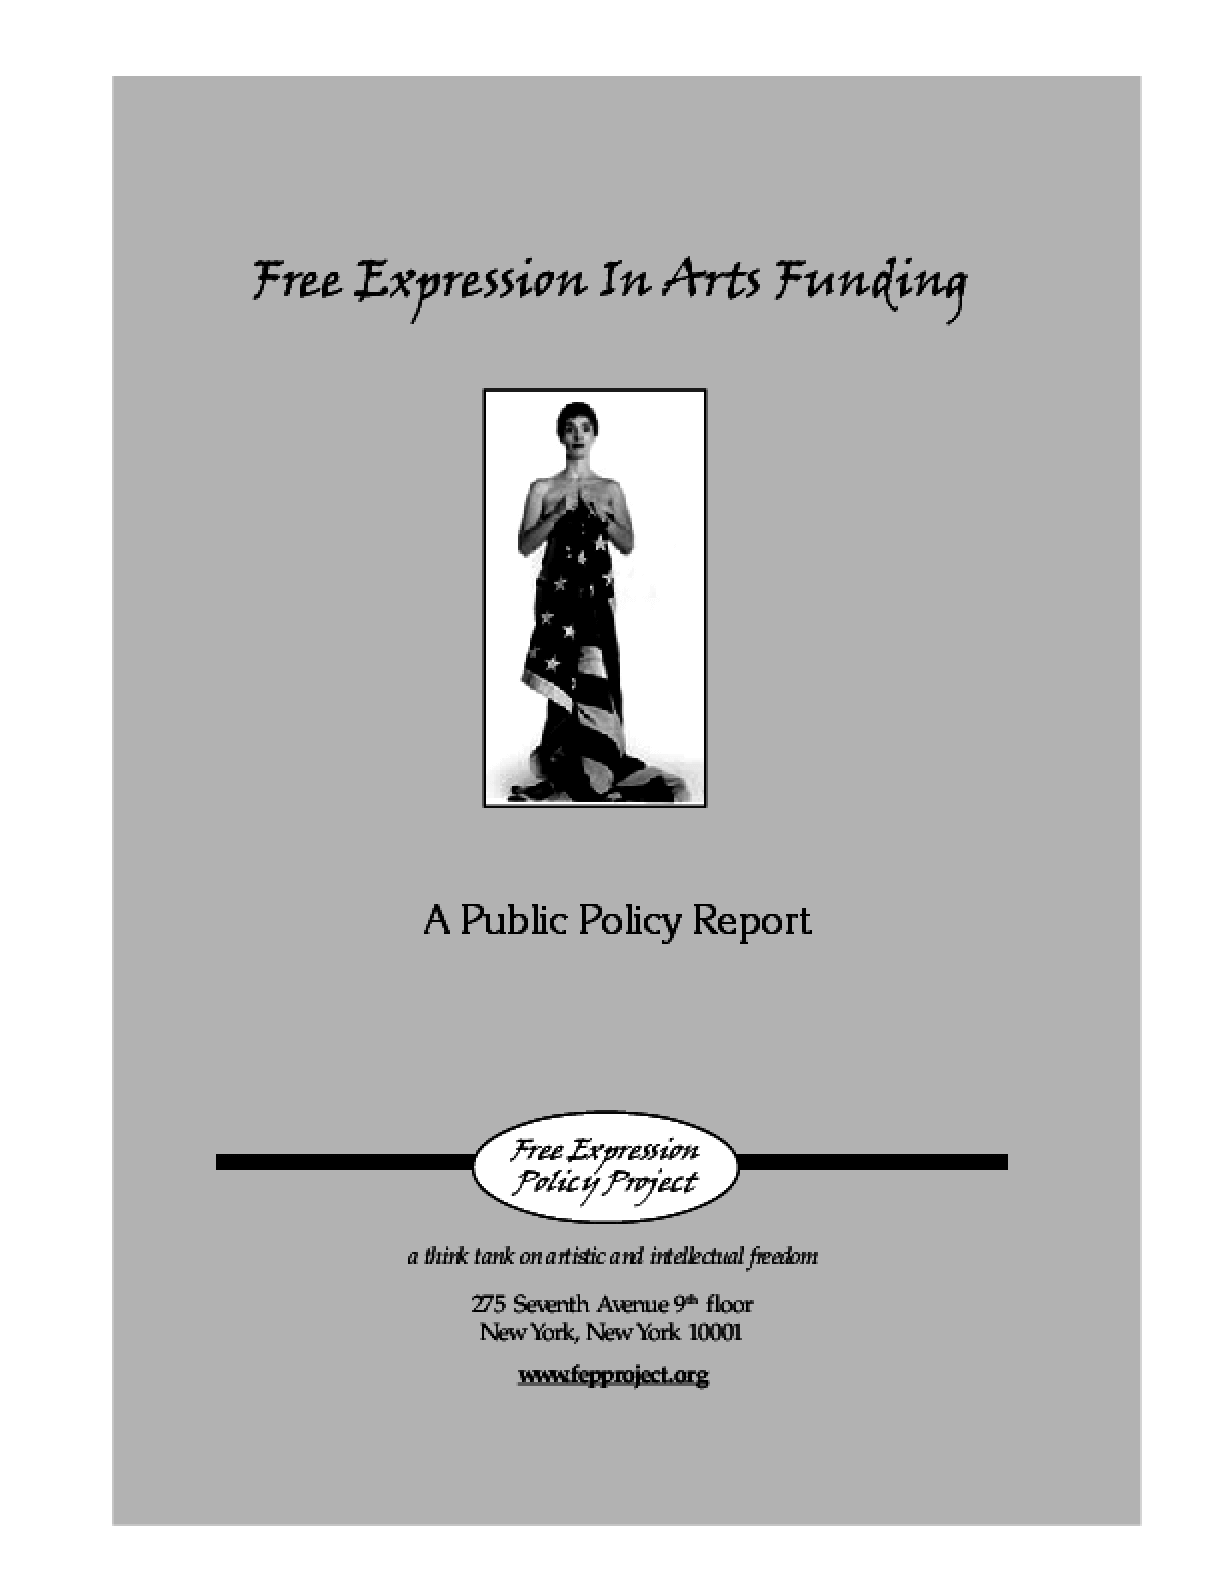 Free Expression in Arts Funding